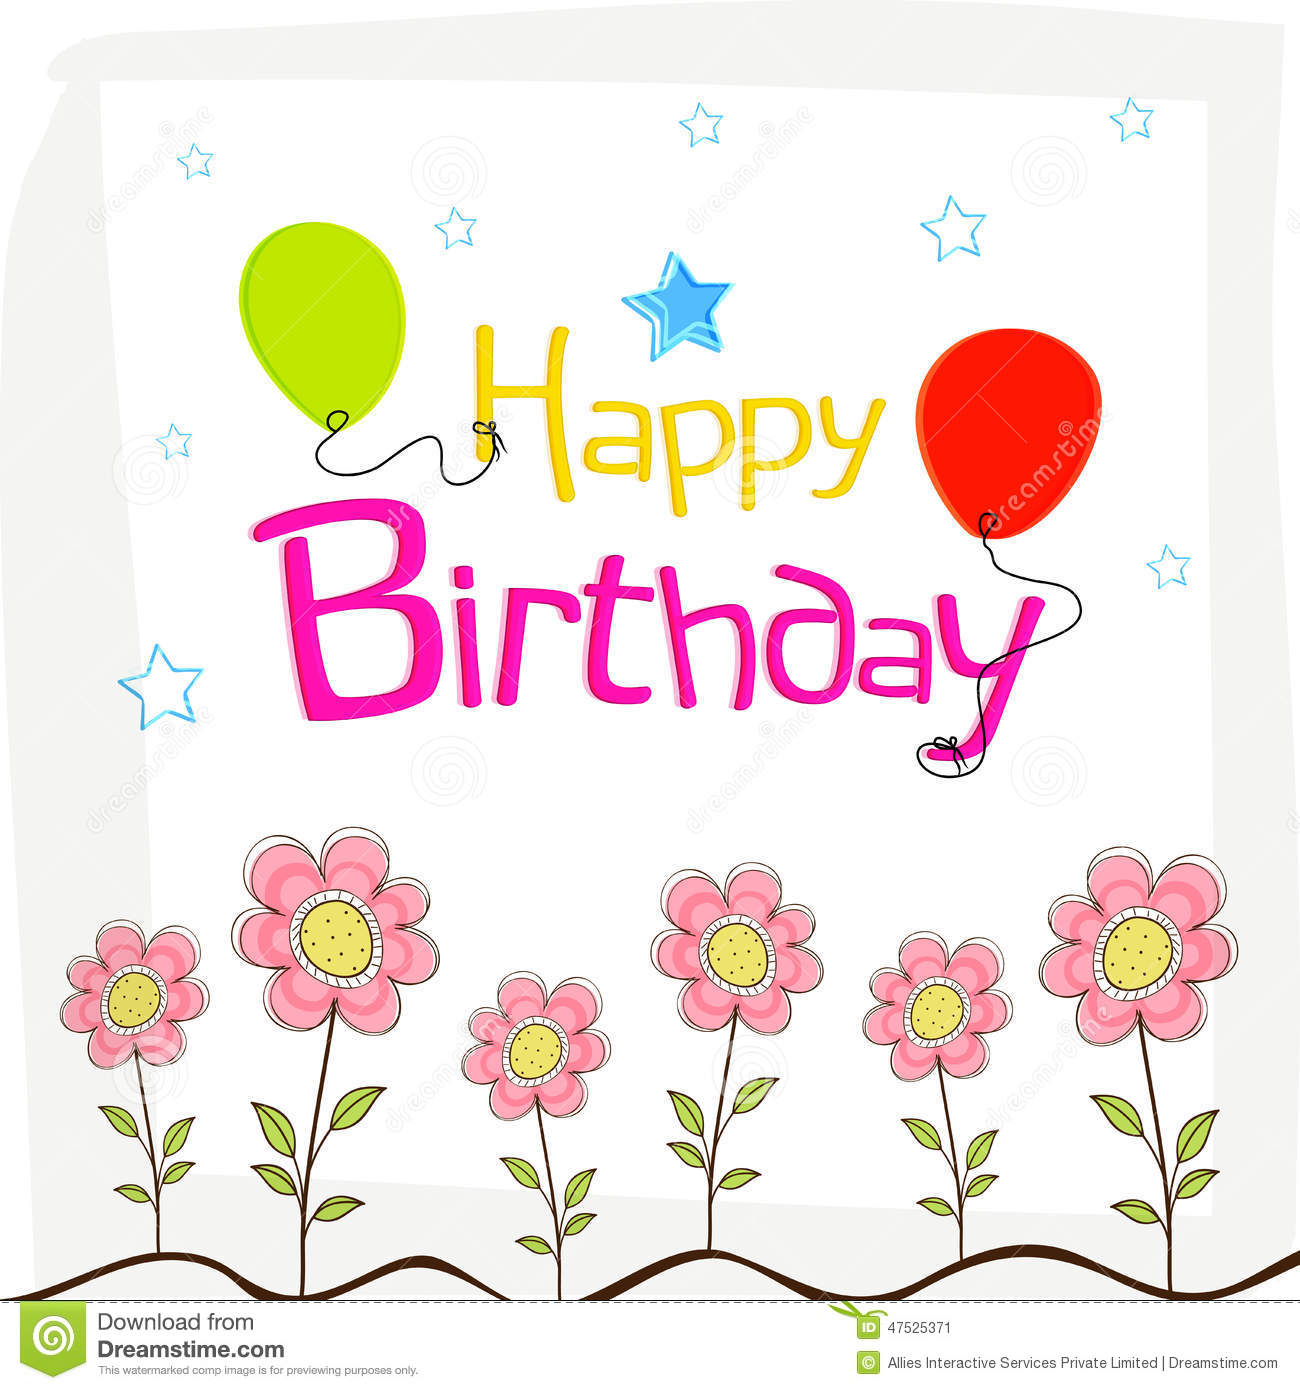 Happy Birthday Wishes Poster Design With Decoration. Stock ...